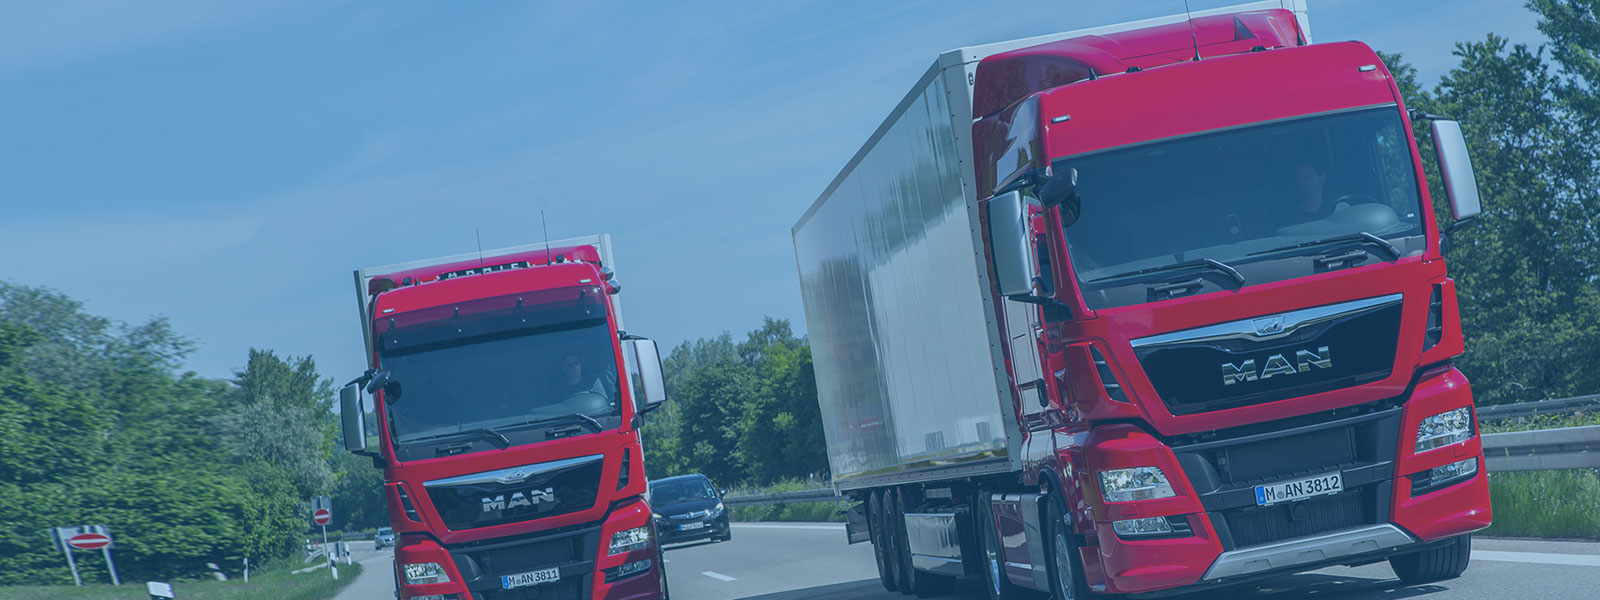 Things To Consider While Selecting Fleet Management Software